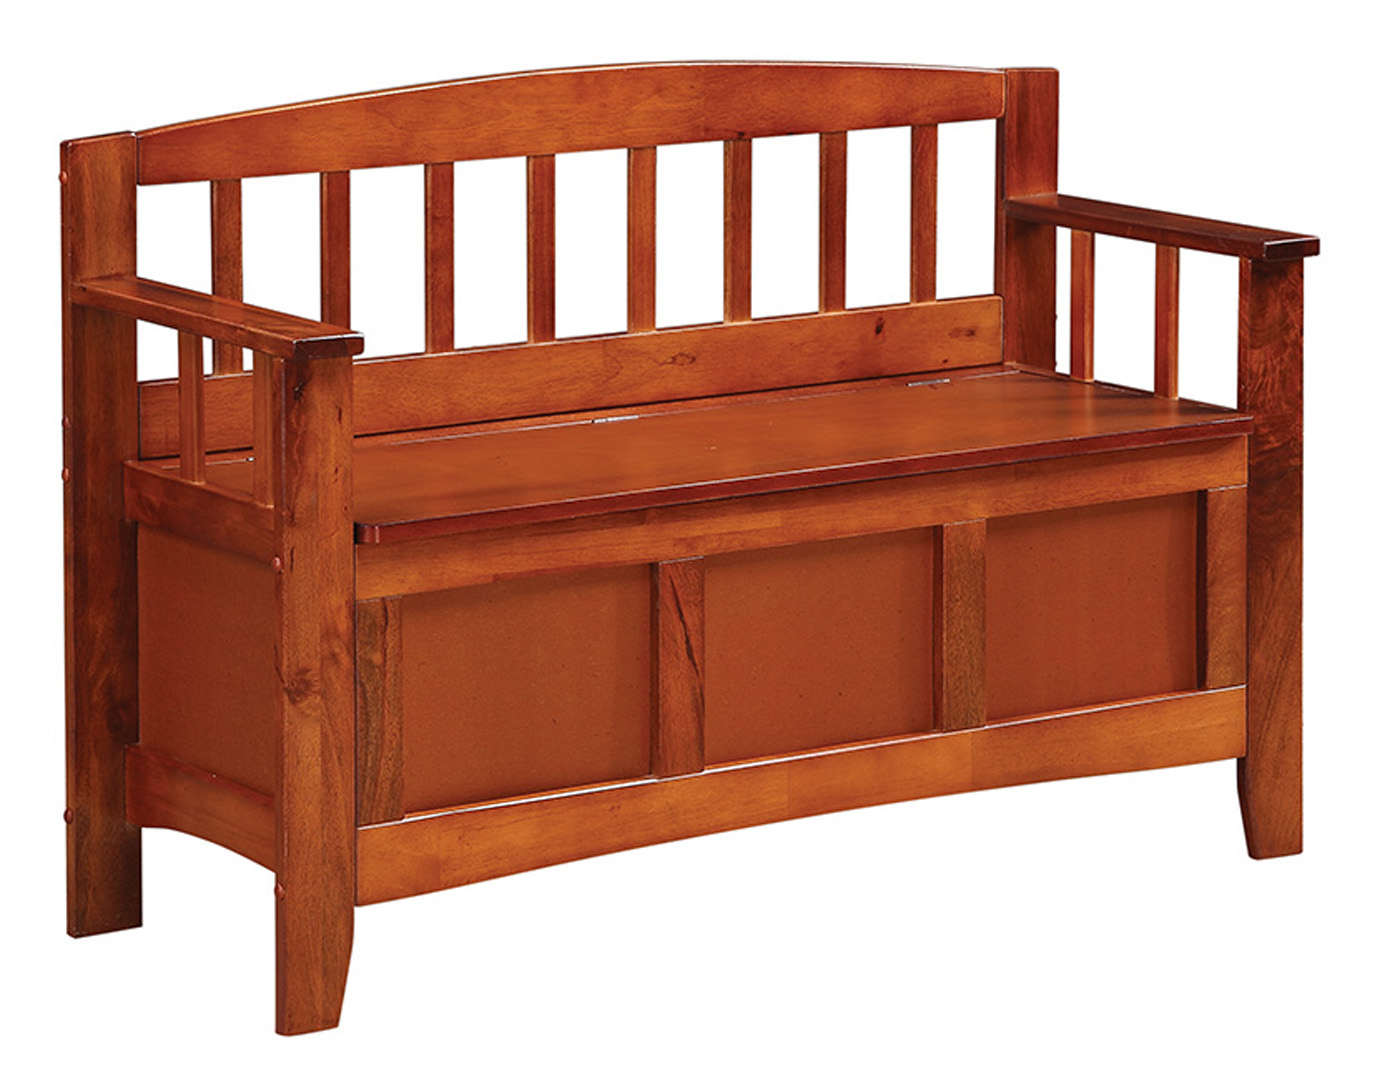 Metro Entry Way Bench By Office Star Price: $175.99